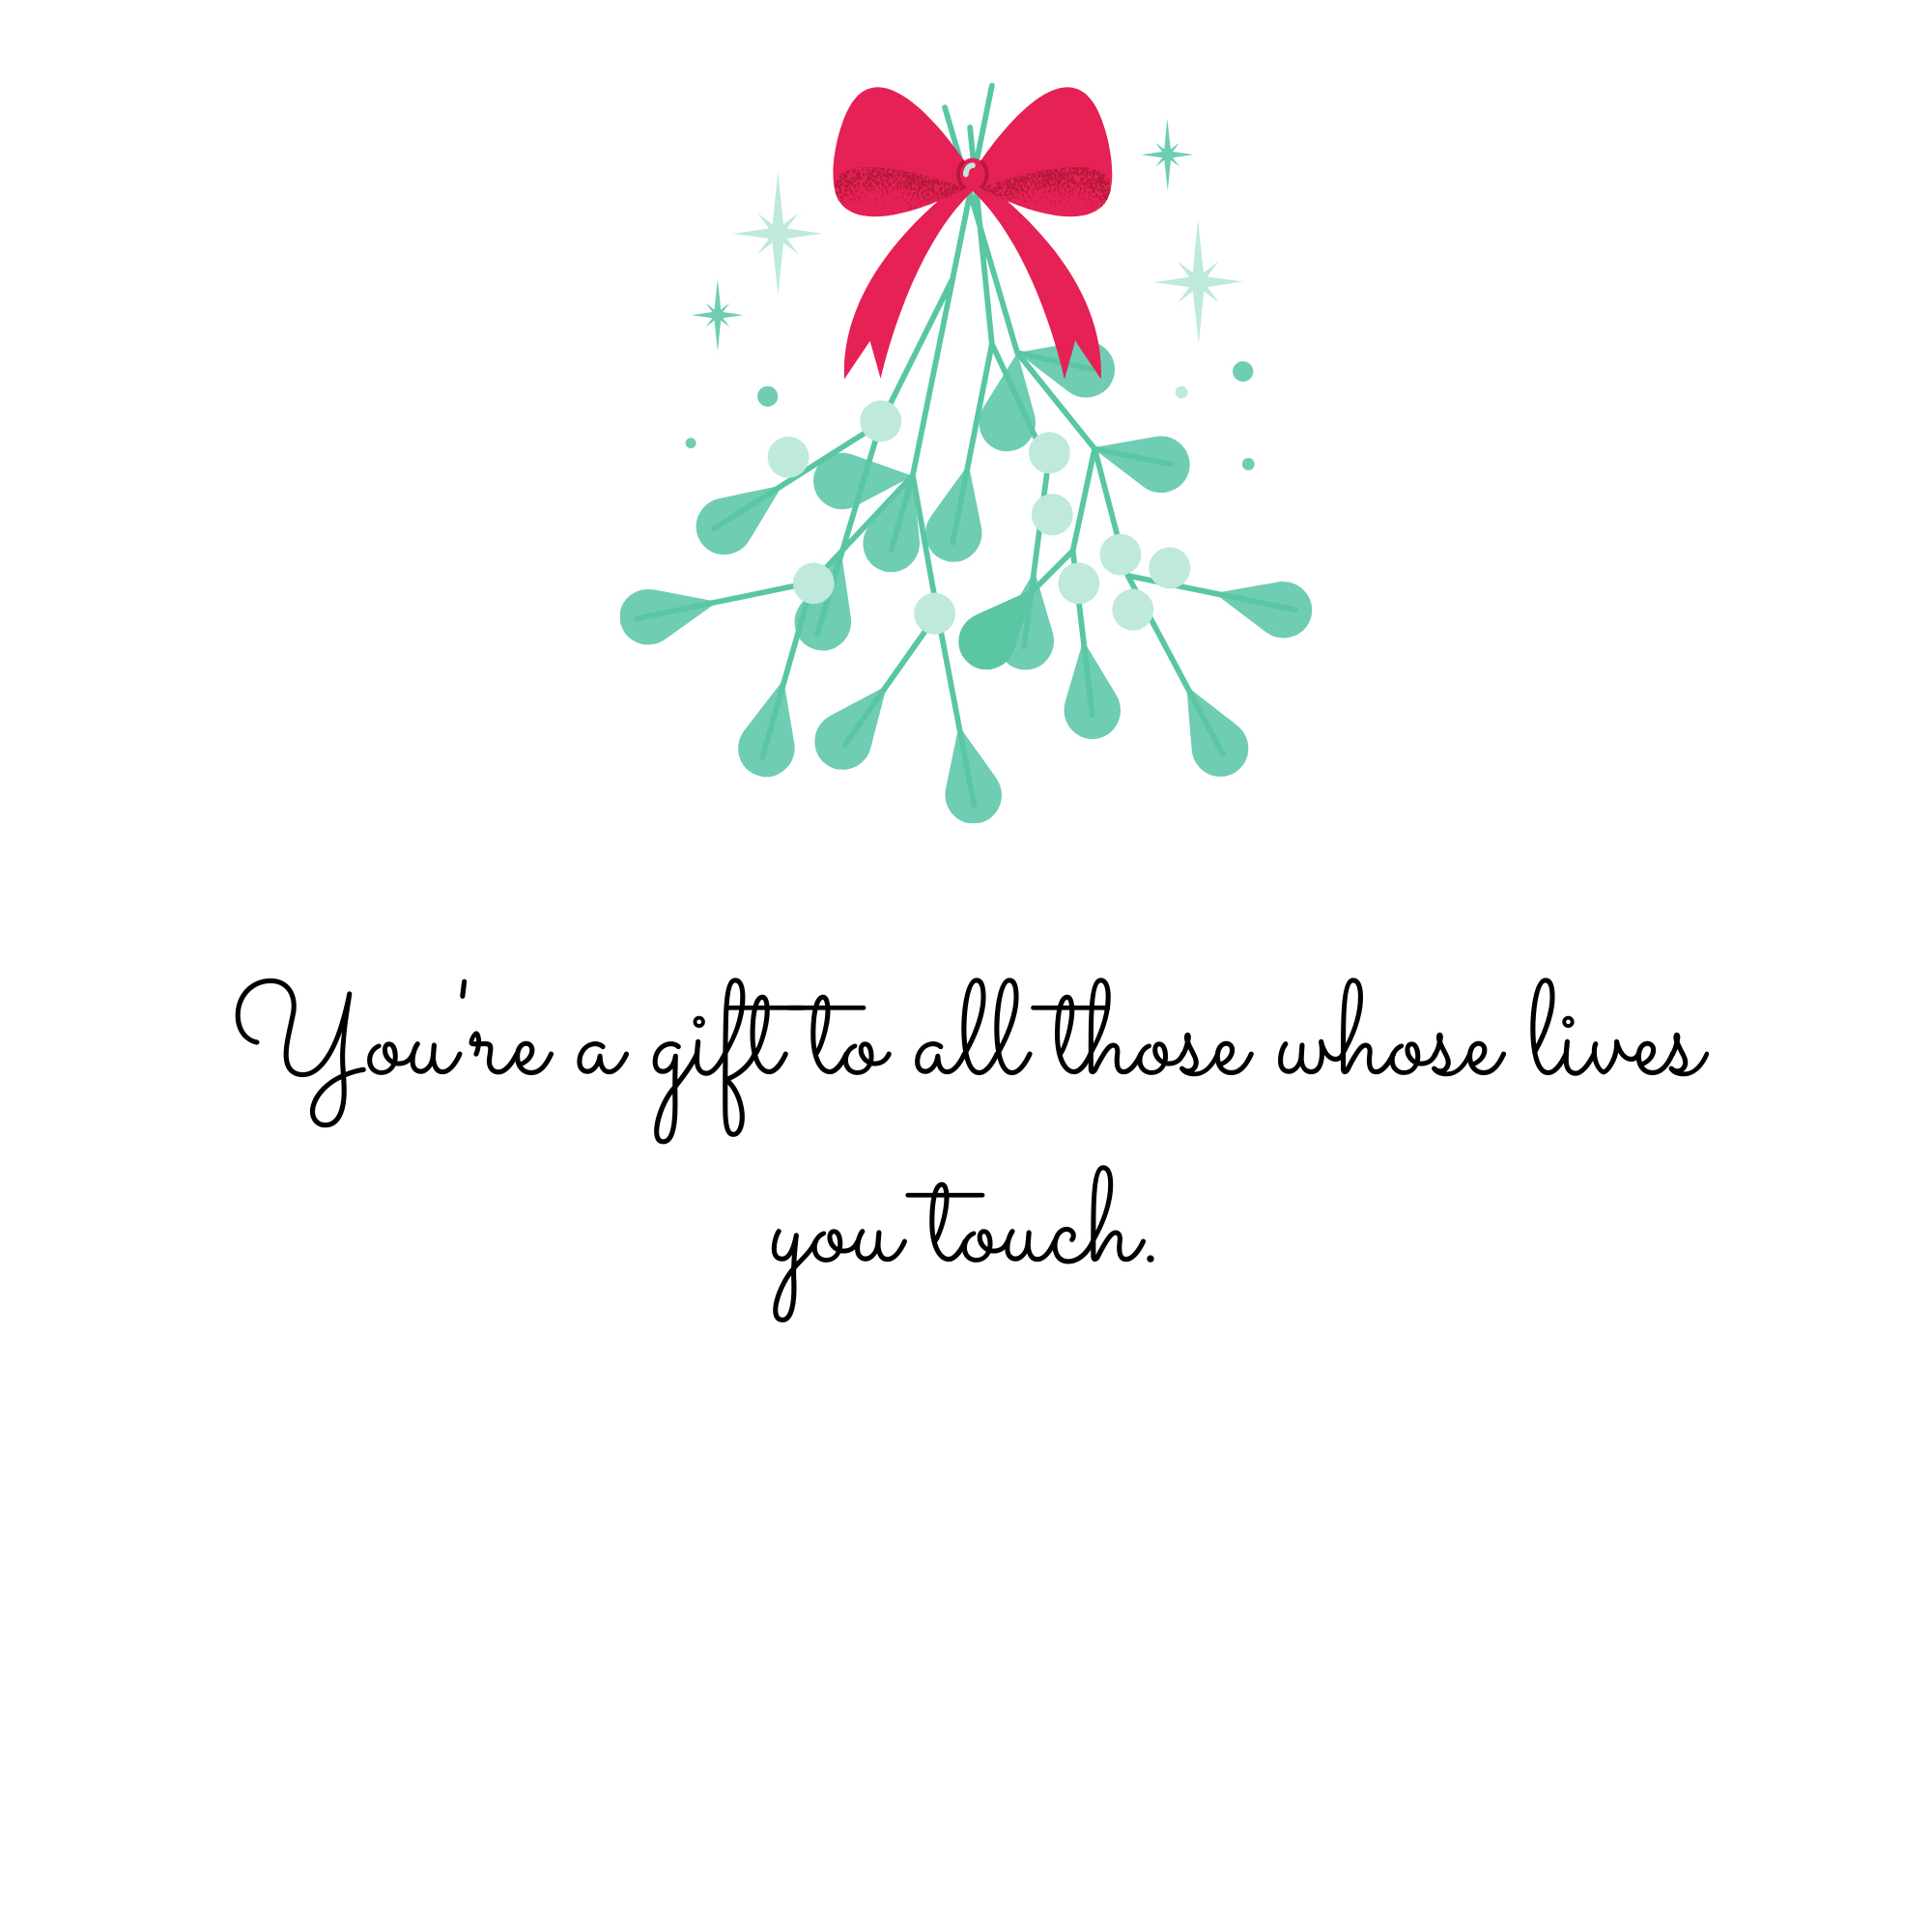 You're a gift to all those whose lives you touch.